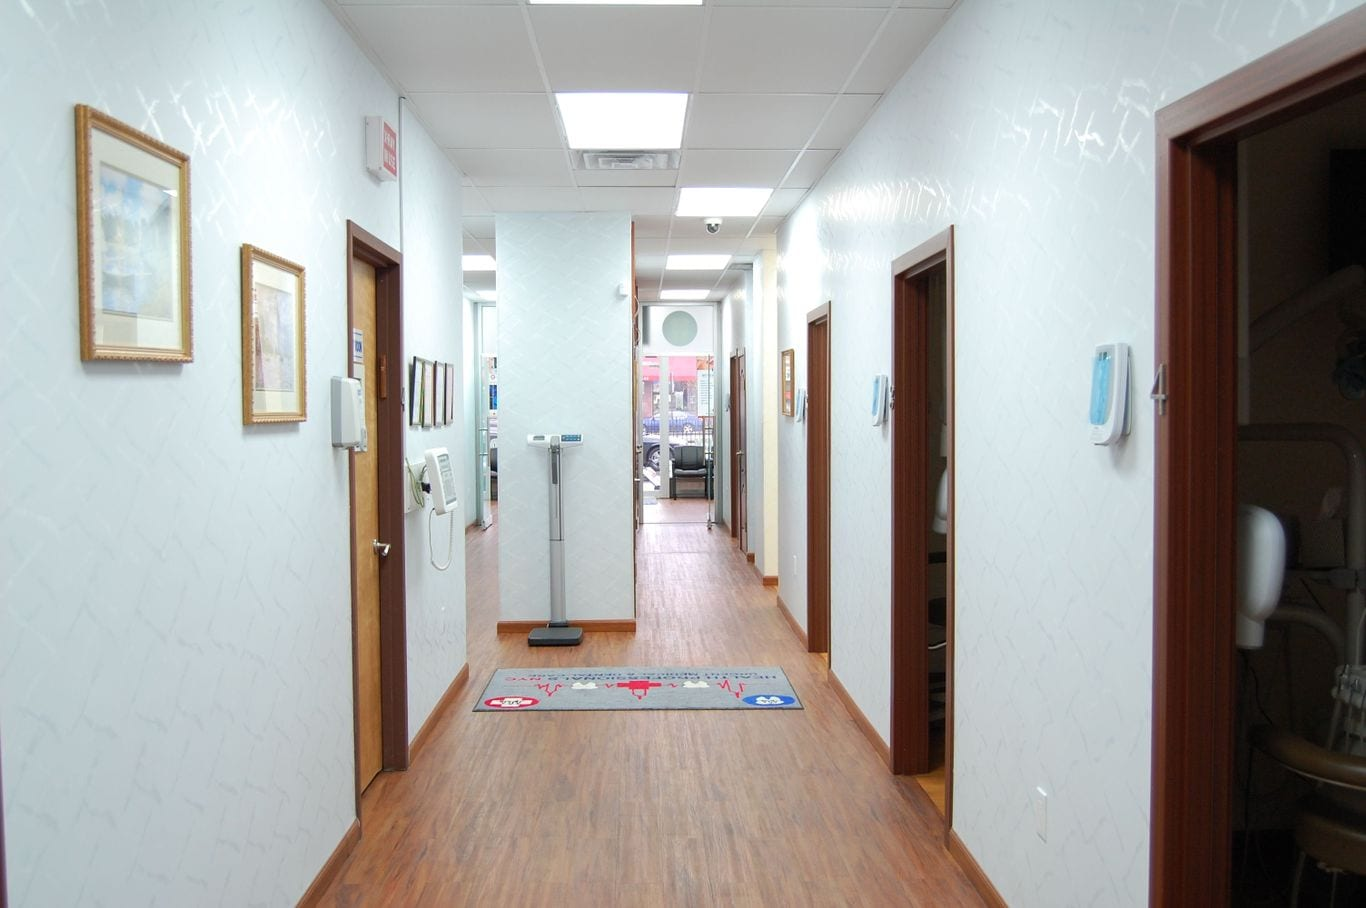 Treatments at myDoc Urgent Care in Forest Hills, Queens NY